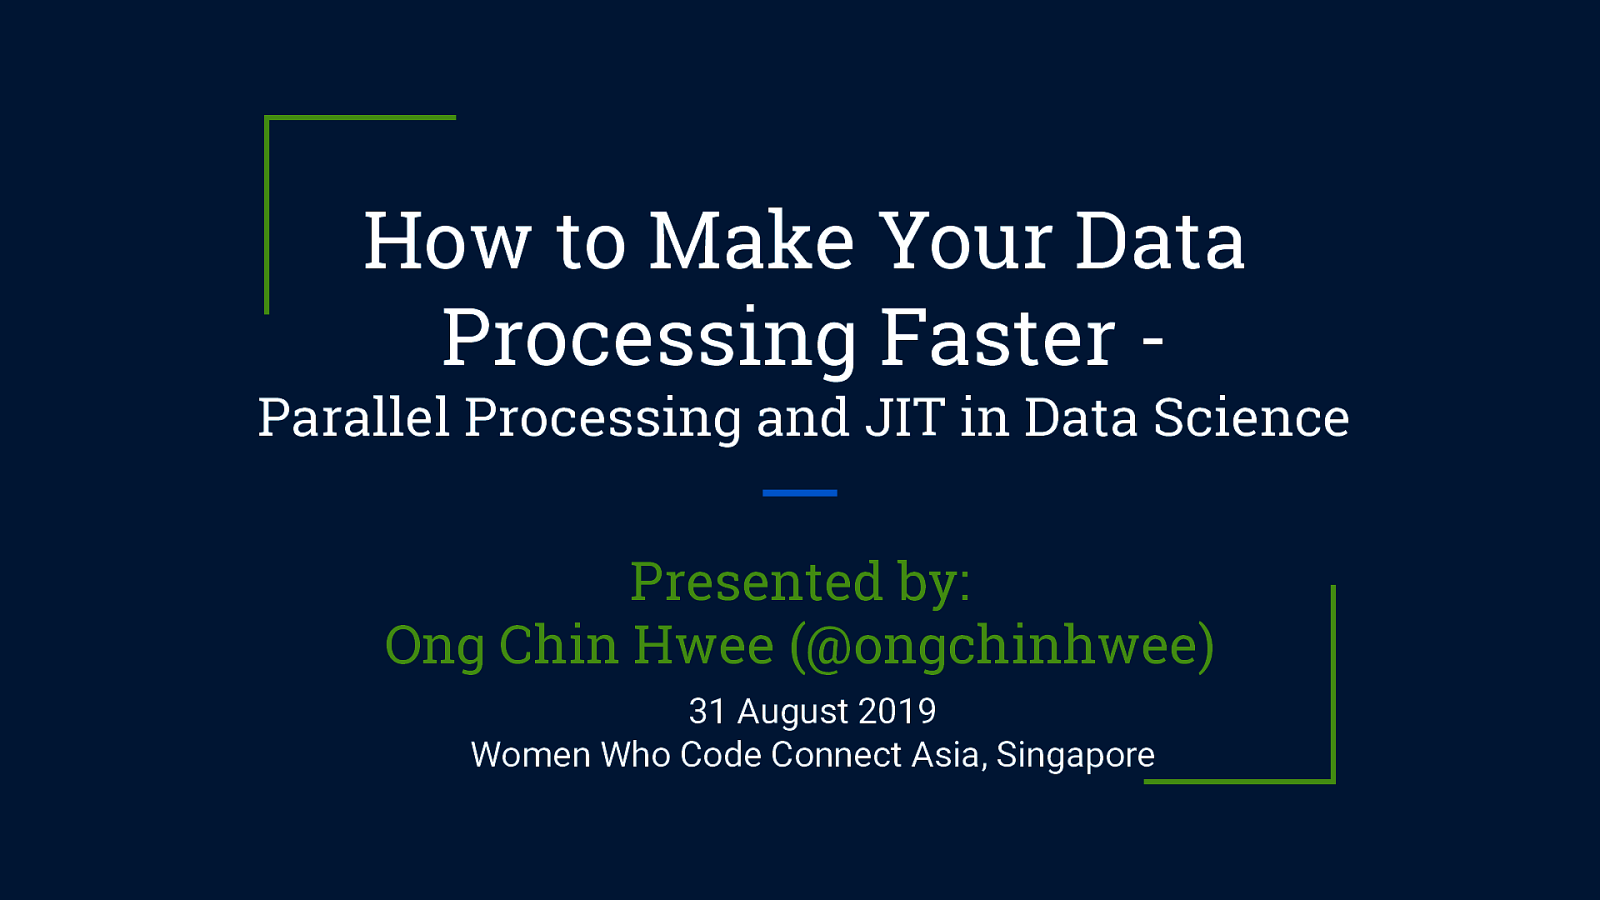 How to Make Your Data Processing Faster - Parallel Processing and JIT in Data Science